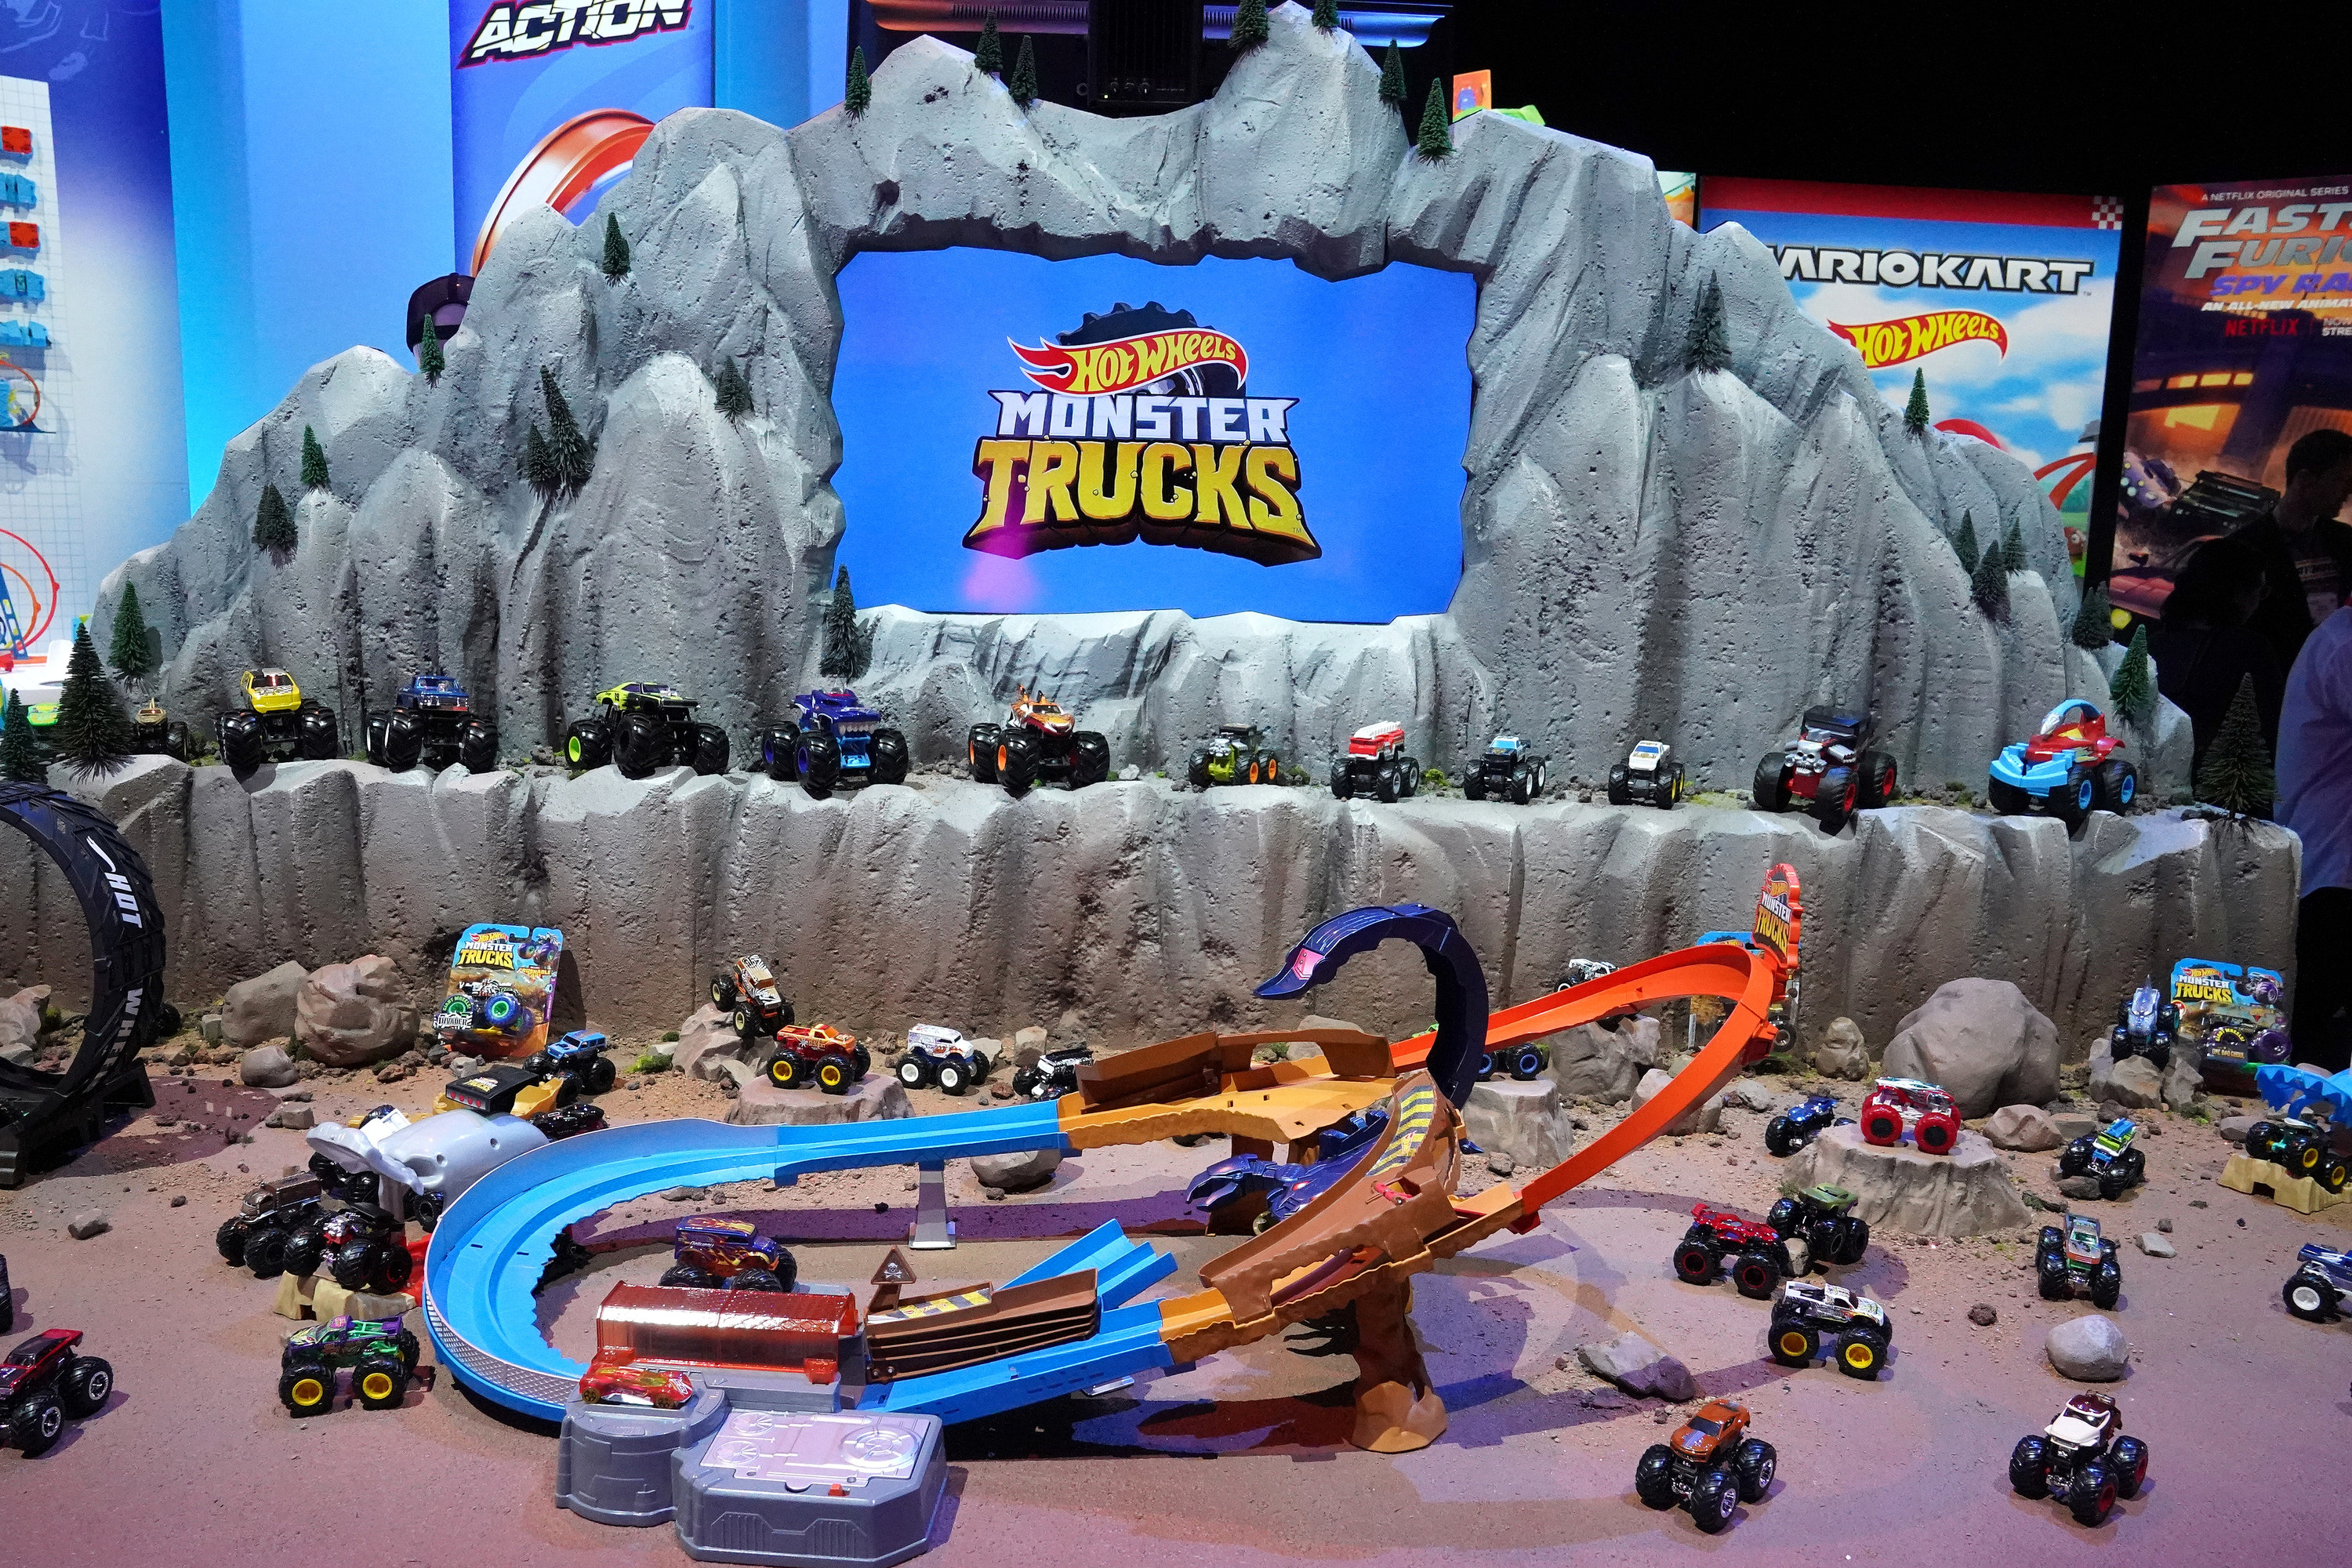 A display set up of Hot Wheels Monster Trucks, with trucks lined up against a toy cliff face, and a race track at the bottom, with my trucks surrounding it